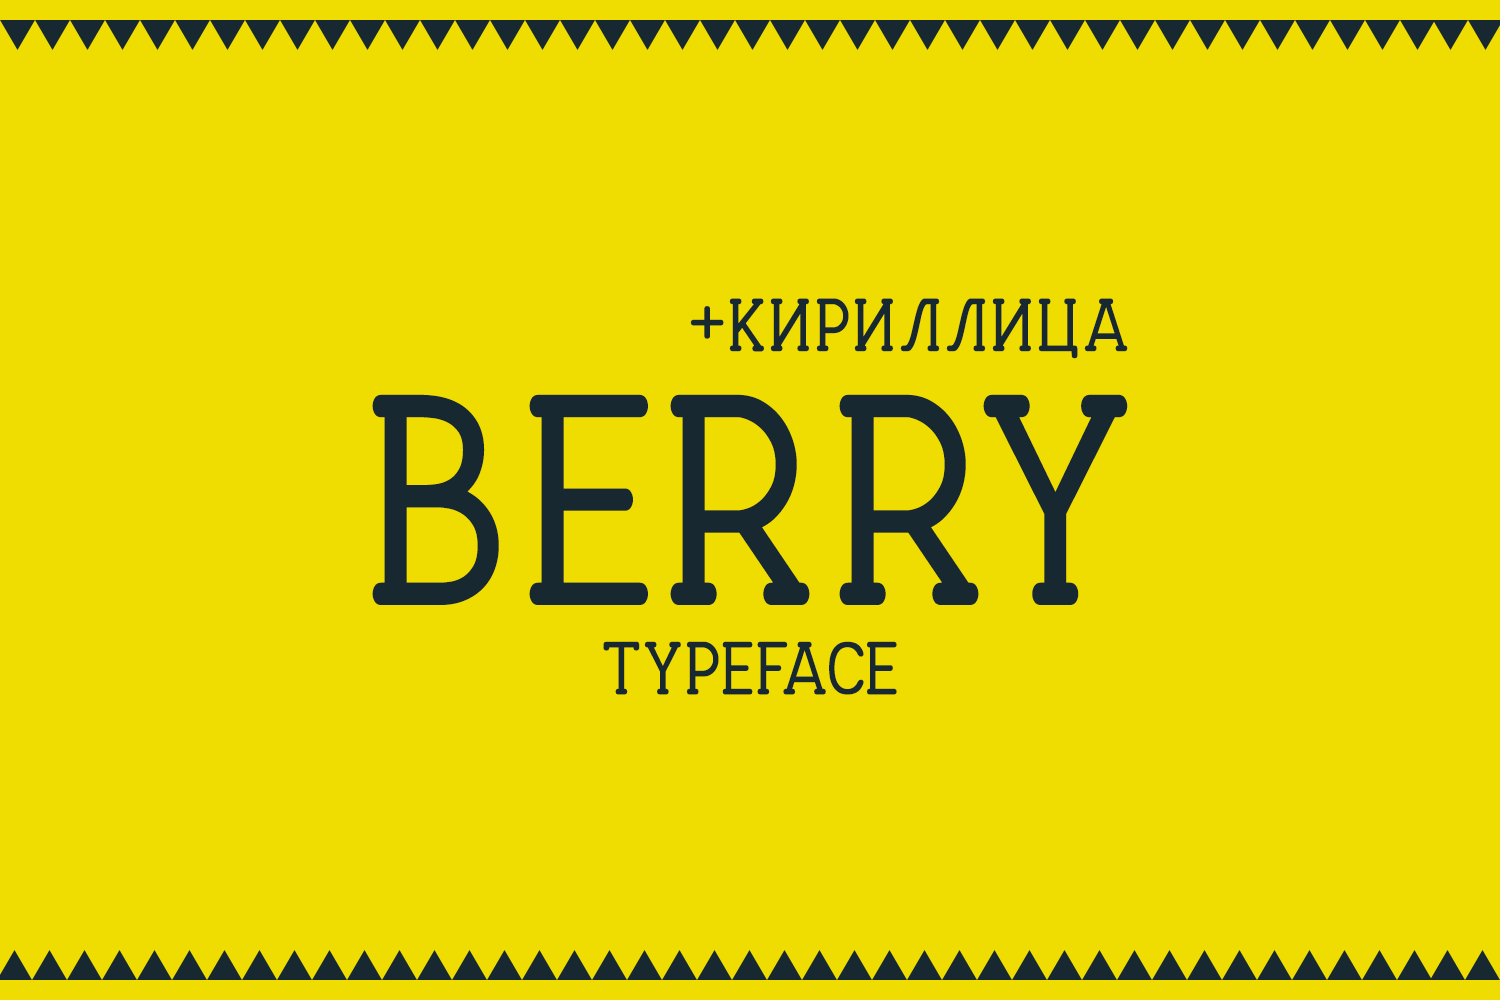 Berry Typeface example image 1